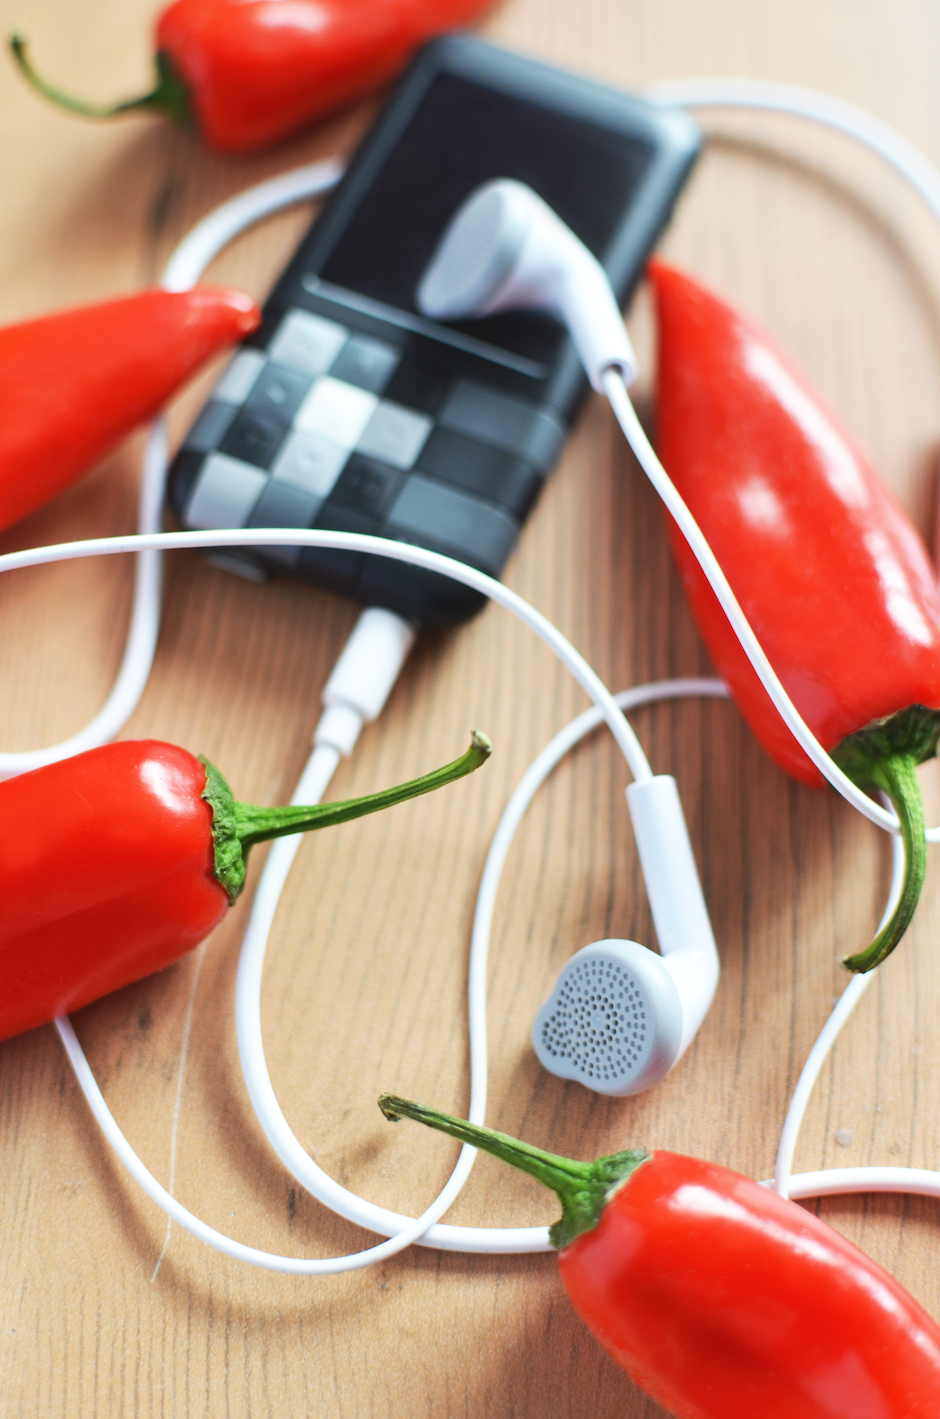 chillies, music player